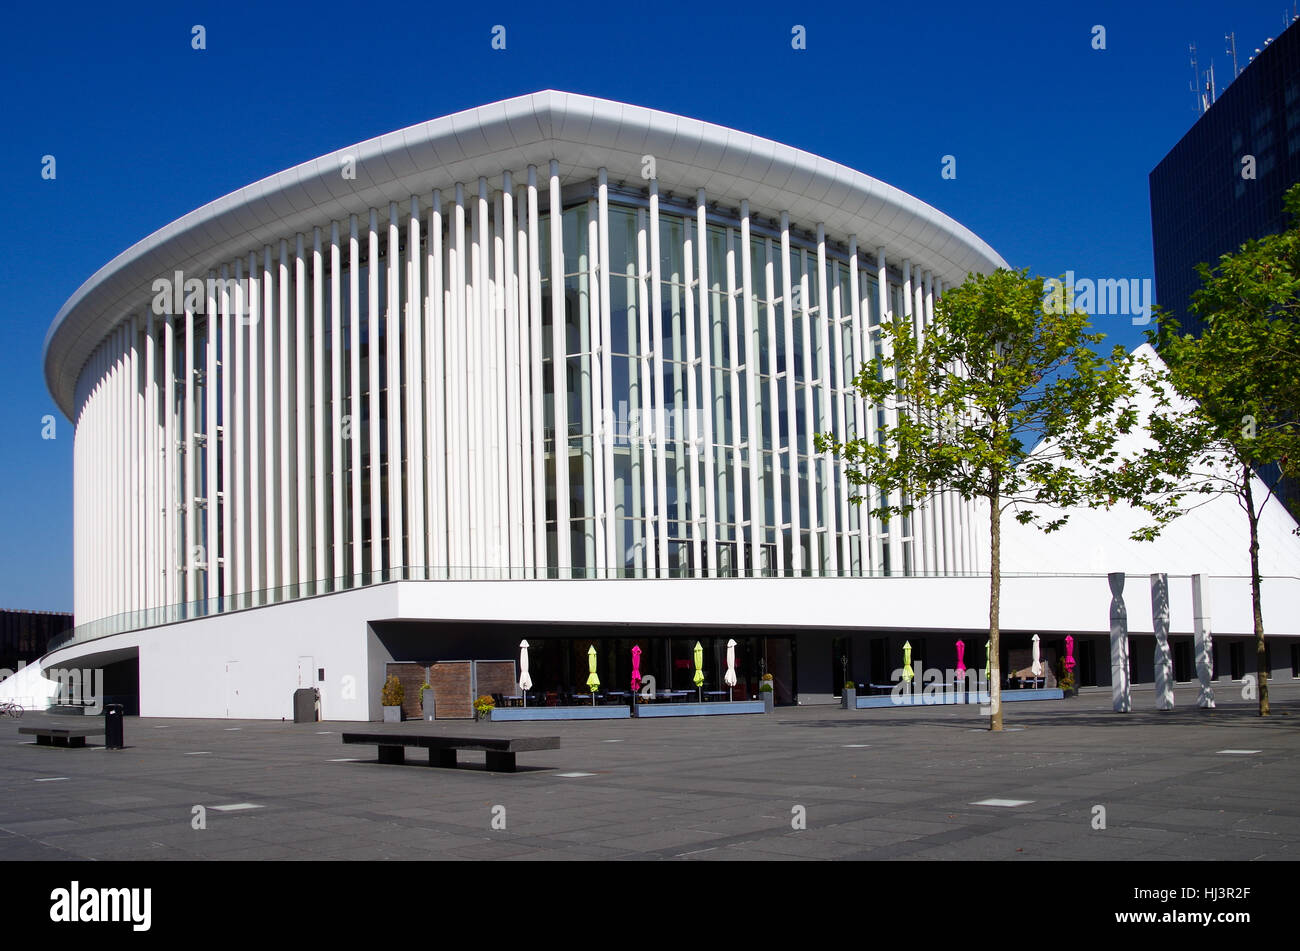 Philharmonie de Luxembourg on the Kirchberg plateau - Stock Image